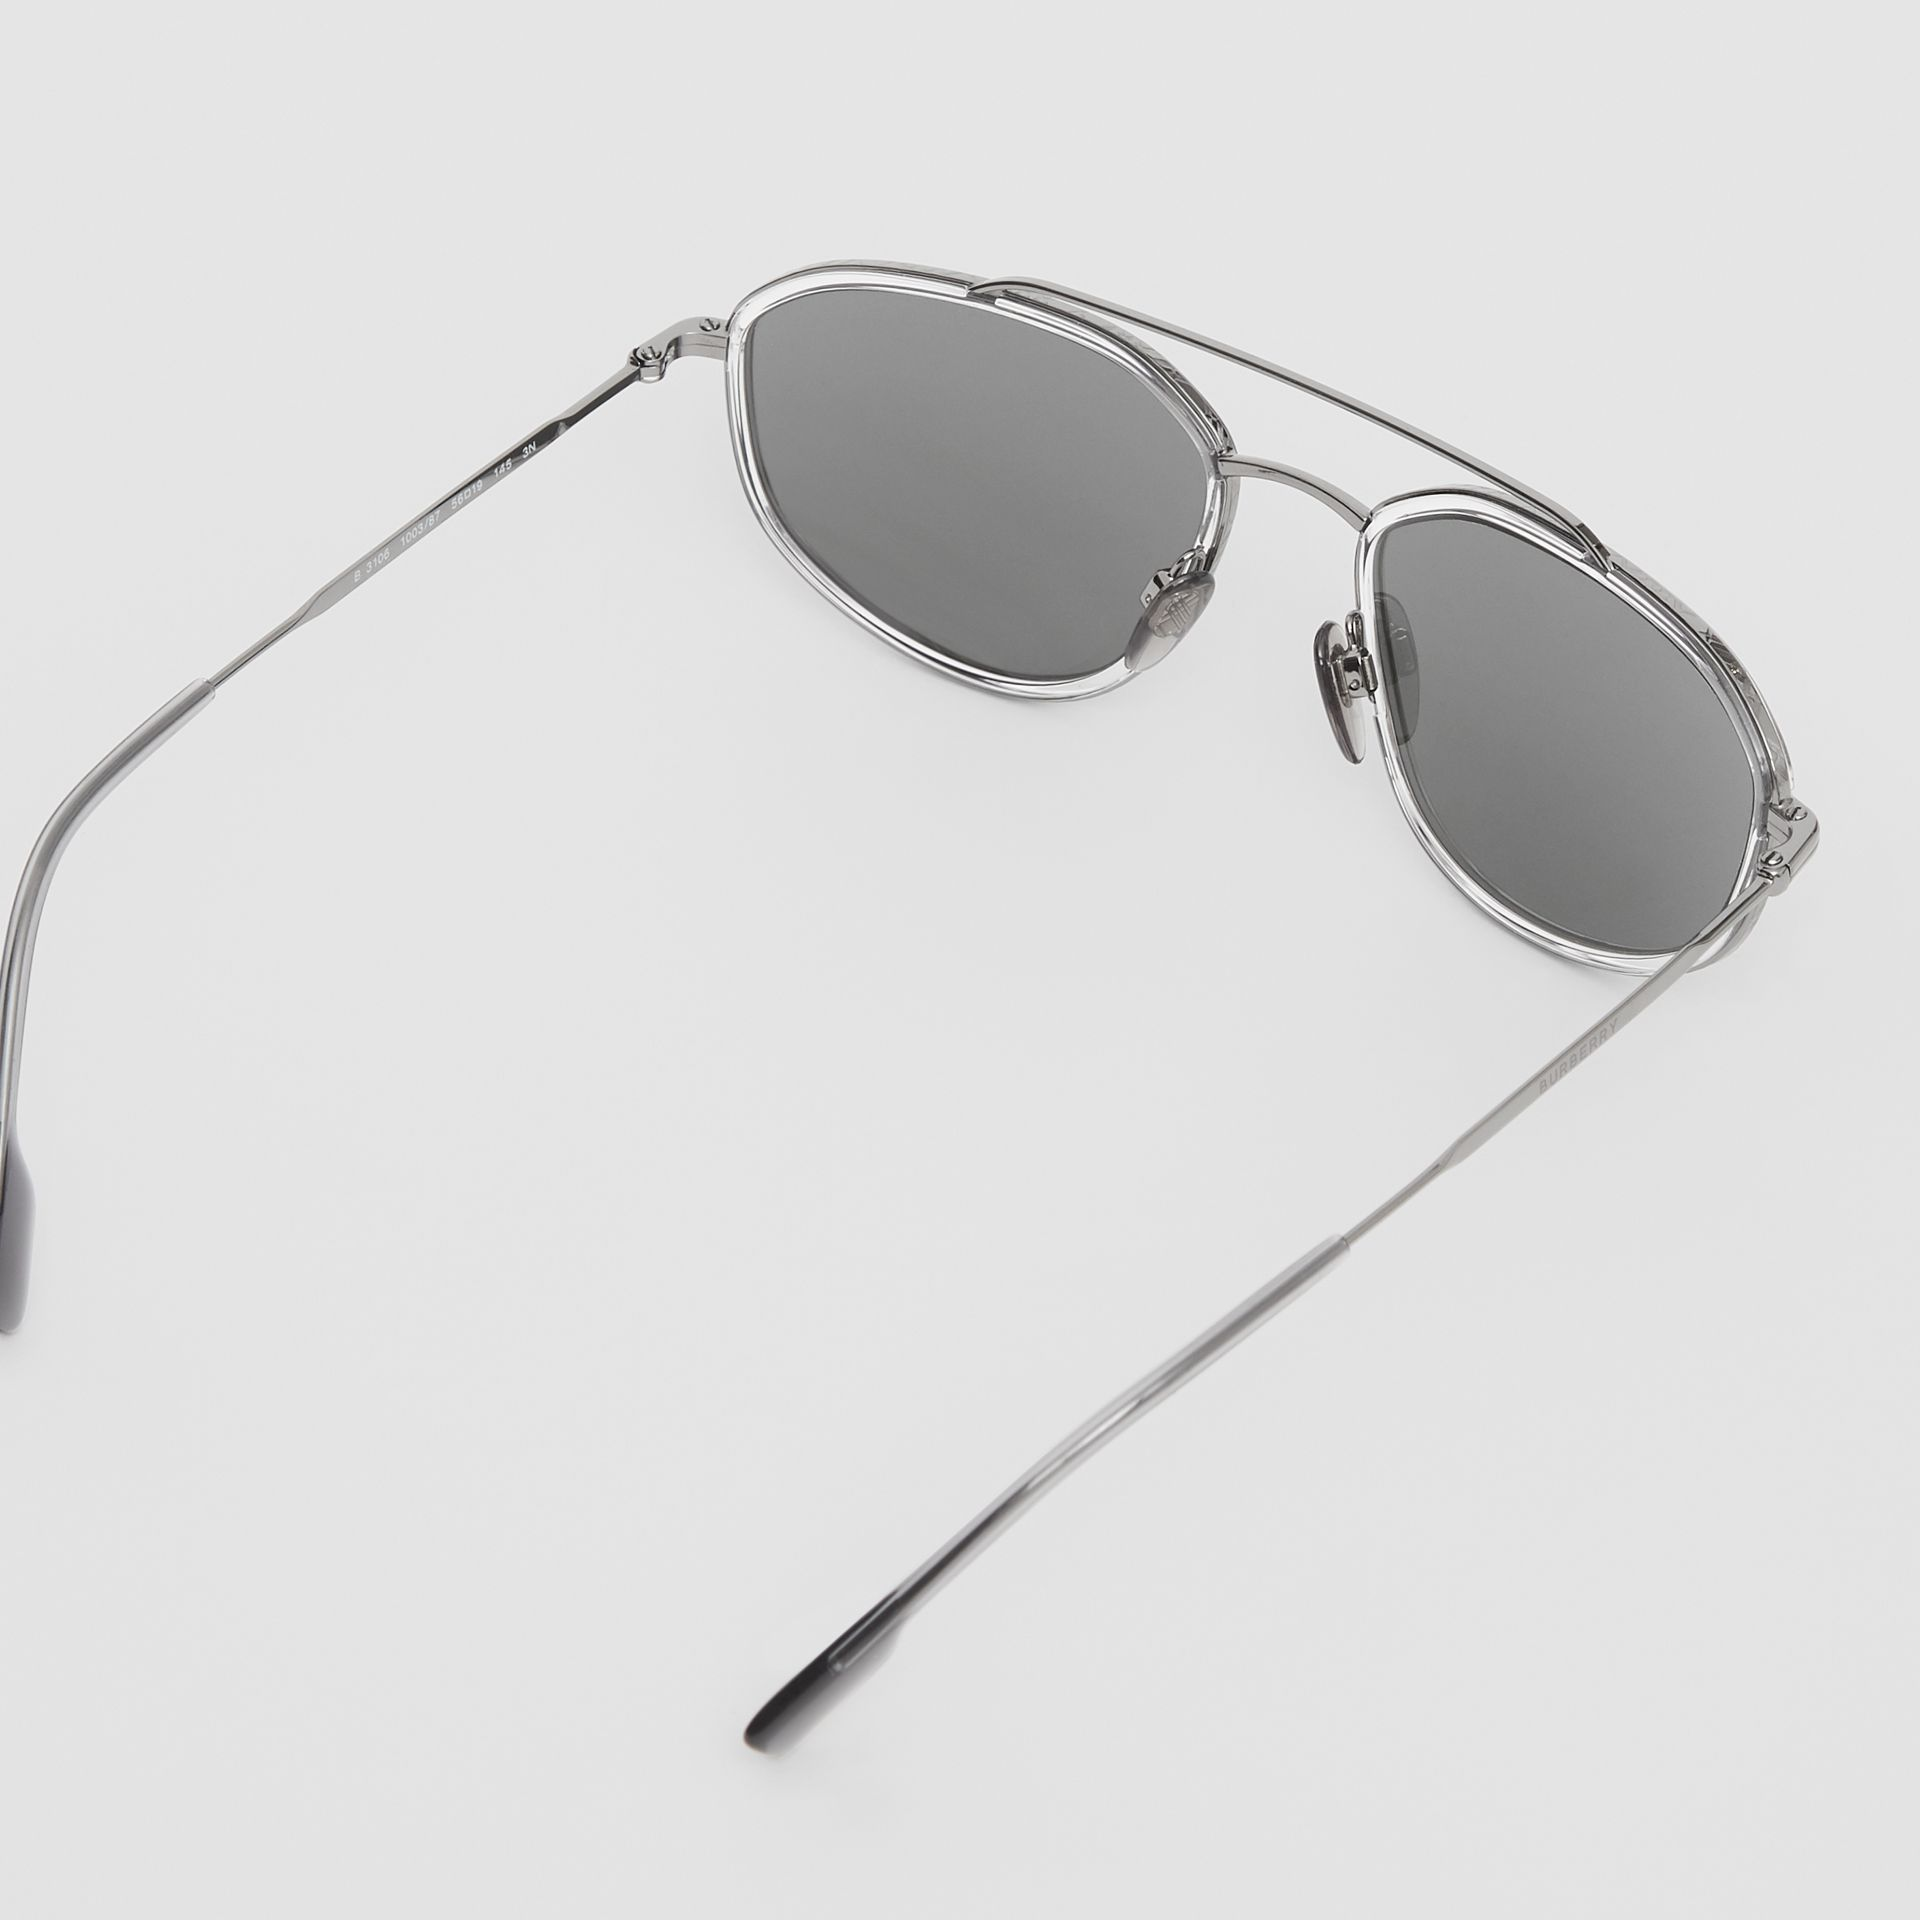 Geometric Navigator Sunglasses in Gunmetal Grey - Men | Burberry - gallery image 3